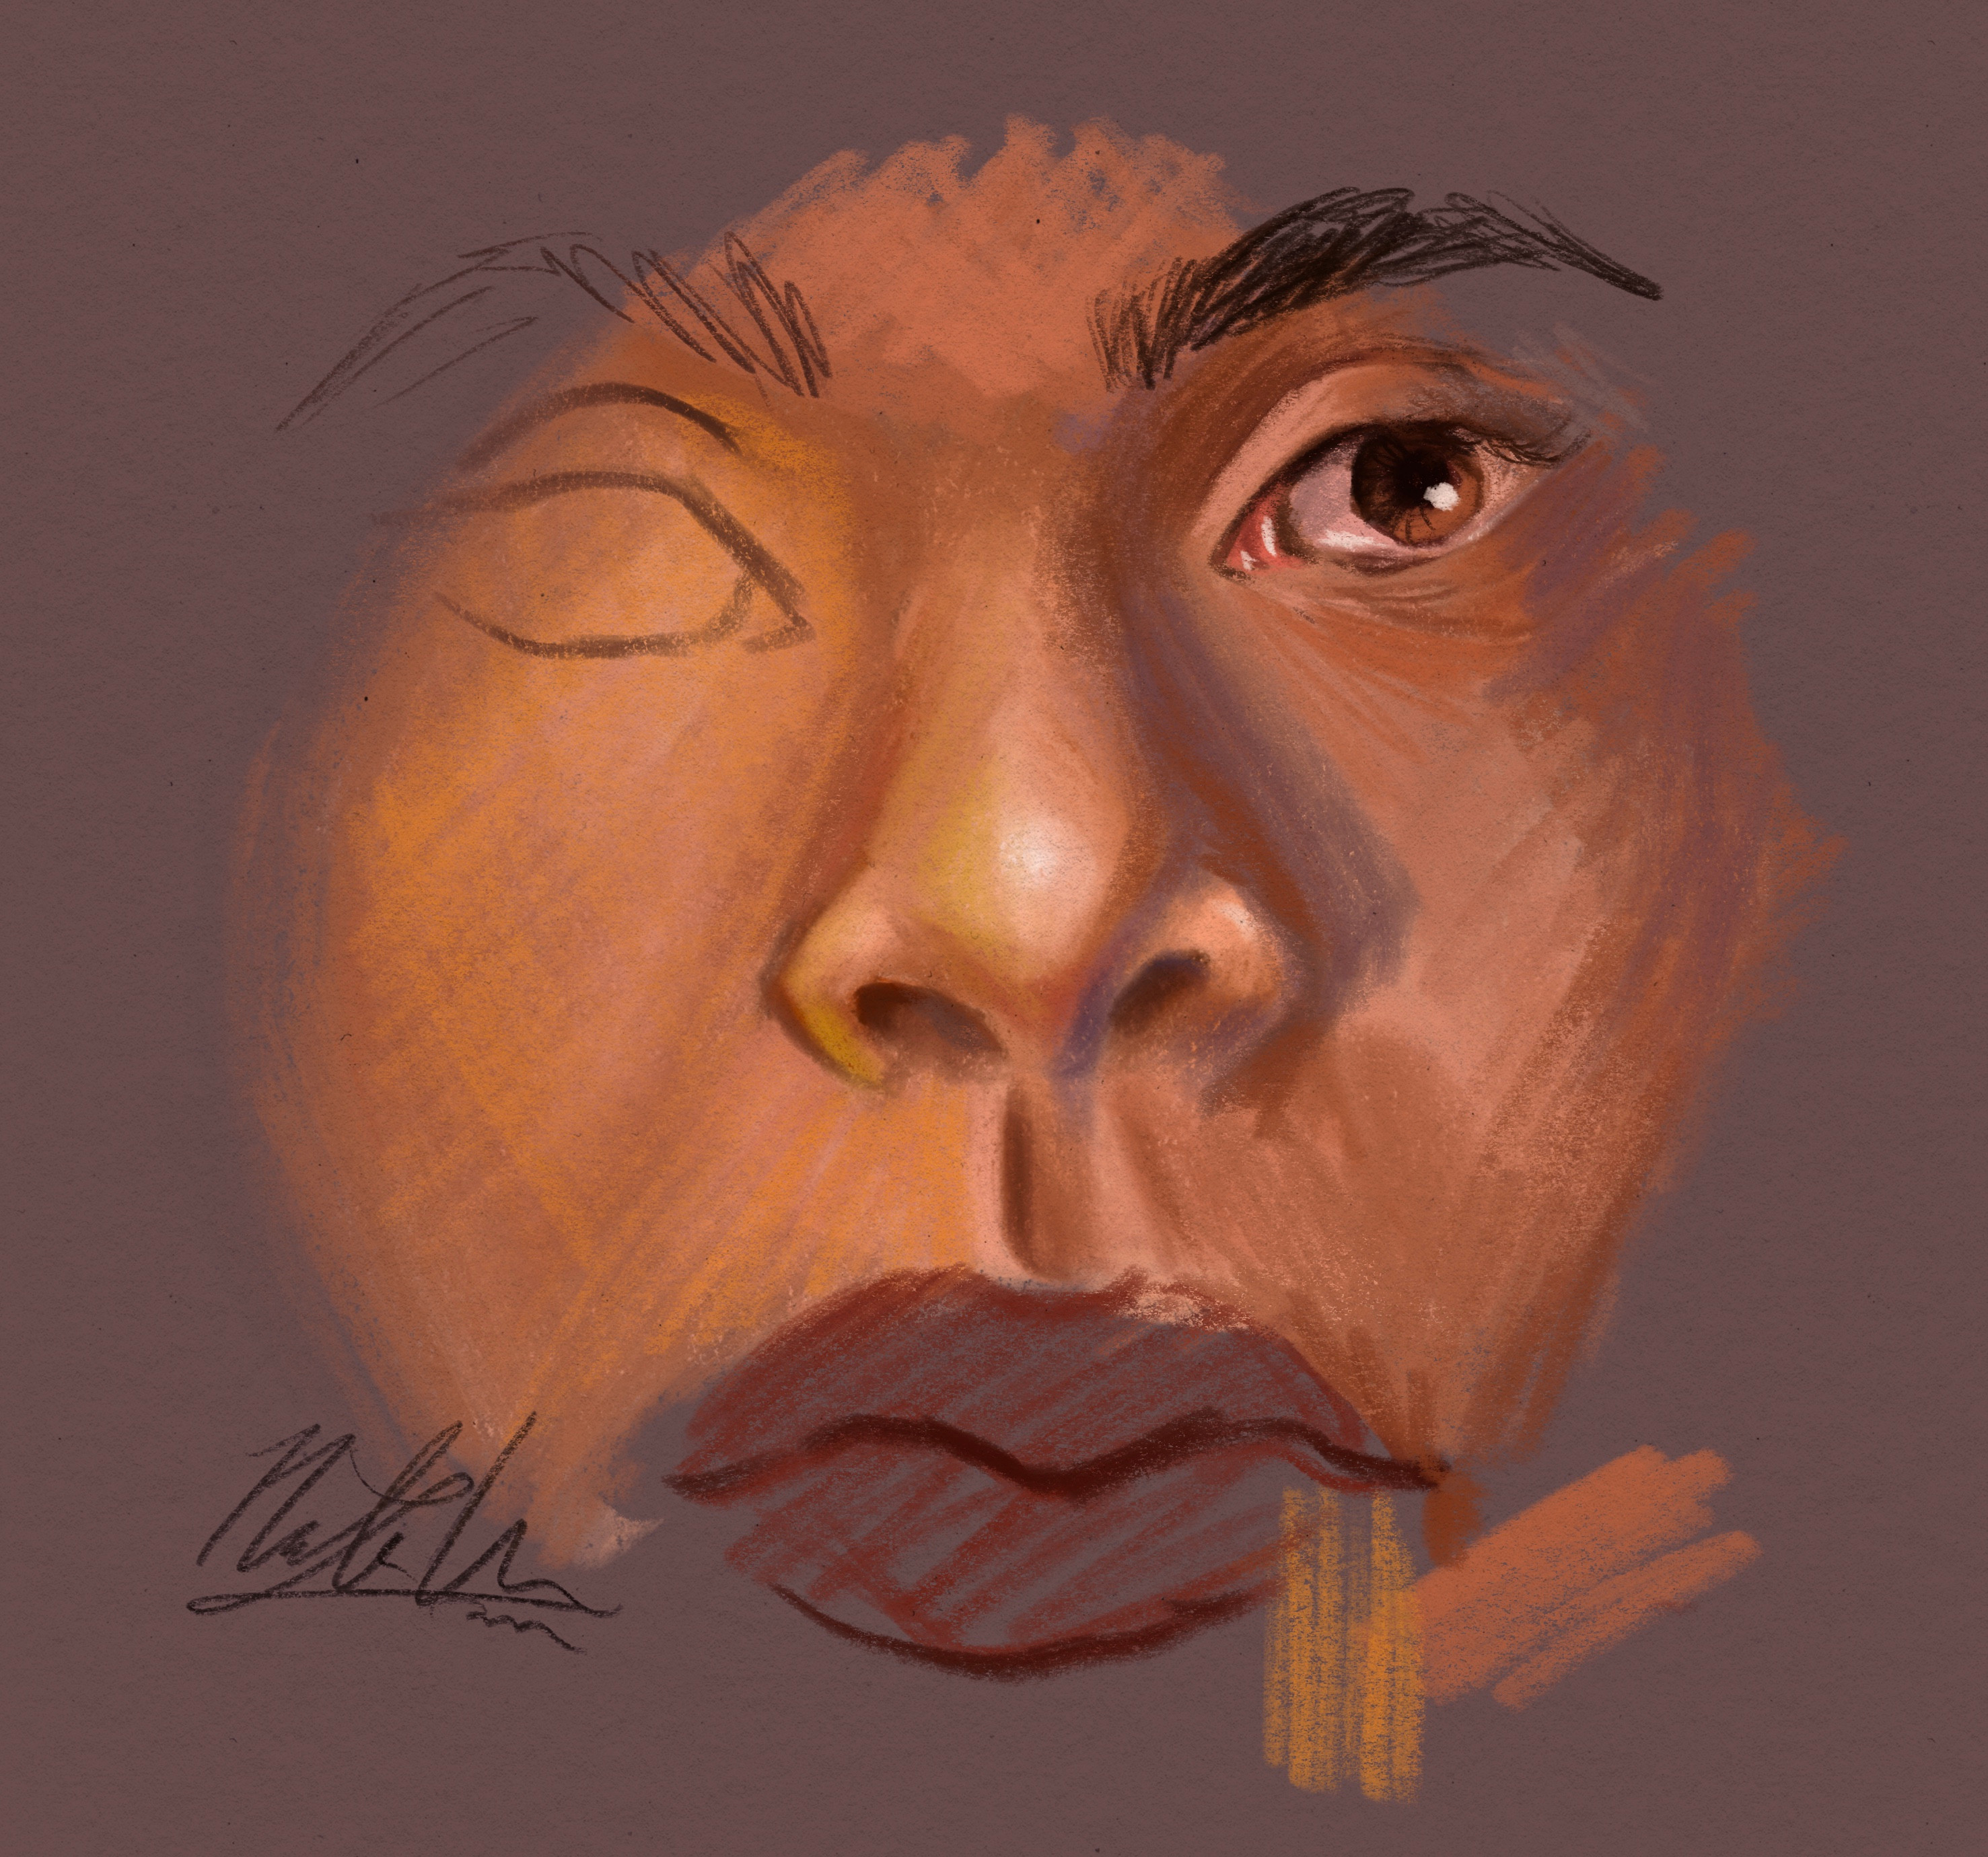 A quick sketch/study I did to try out the brushes/techniques I wanted to use for this piece.